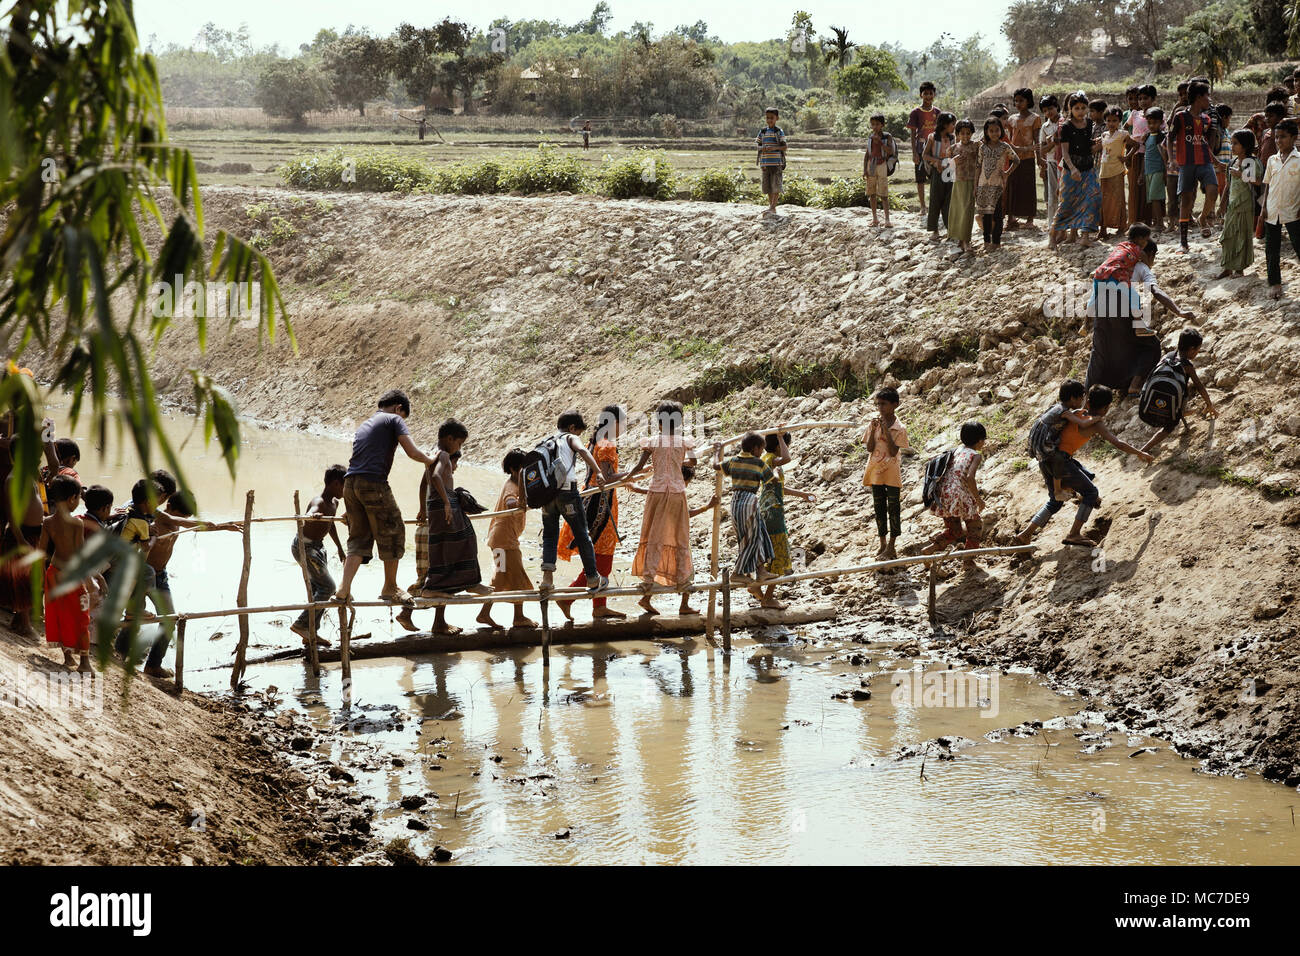 Children cross a makeshift bridge over a stream of sewage into nearby fields to play games. There are now approximately 600,000 Rohingya refugees in the Kutupalong refugee camp of Southern Bangladesh. While preparations are now being made for the Monsoon season which is fast approaching, many NGO's have left leaving much work to be done to make up for their shortfall. - Stock Image